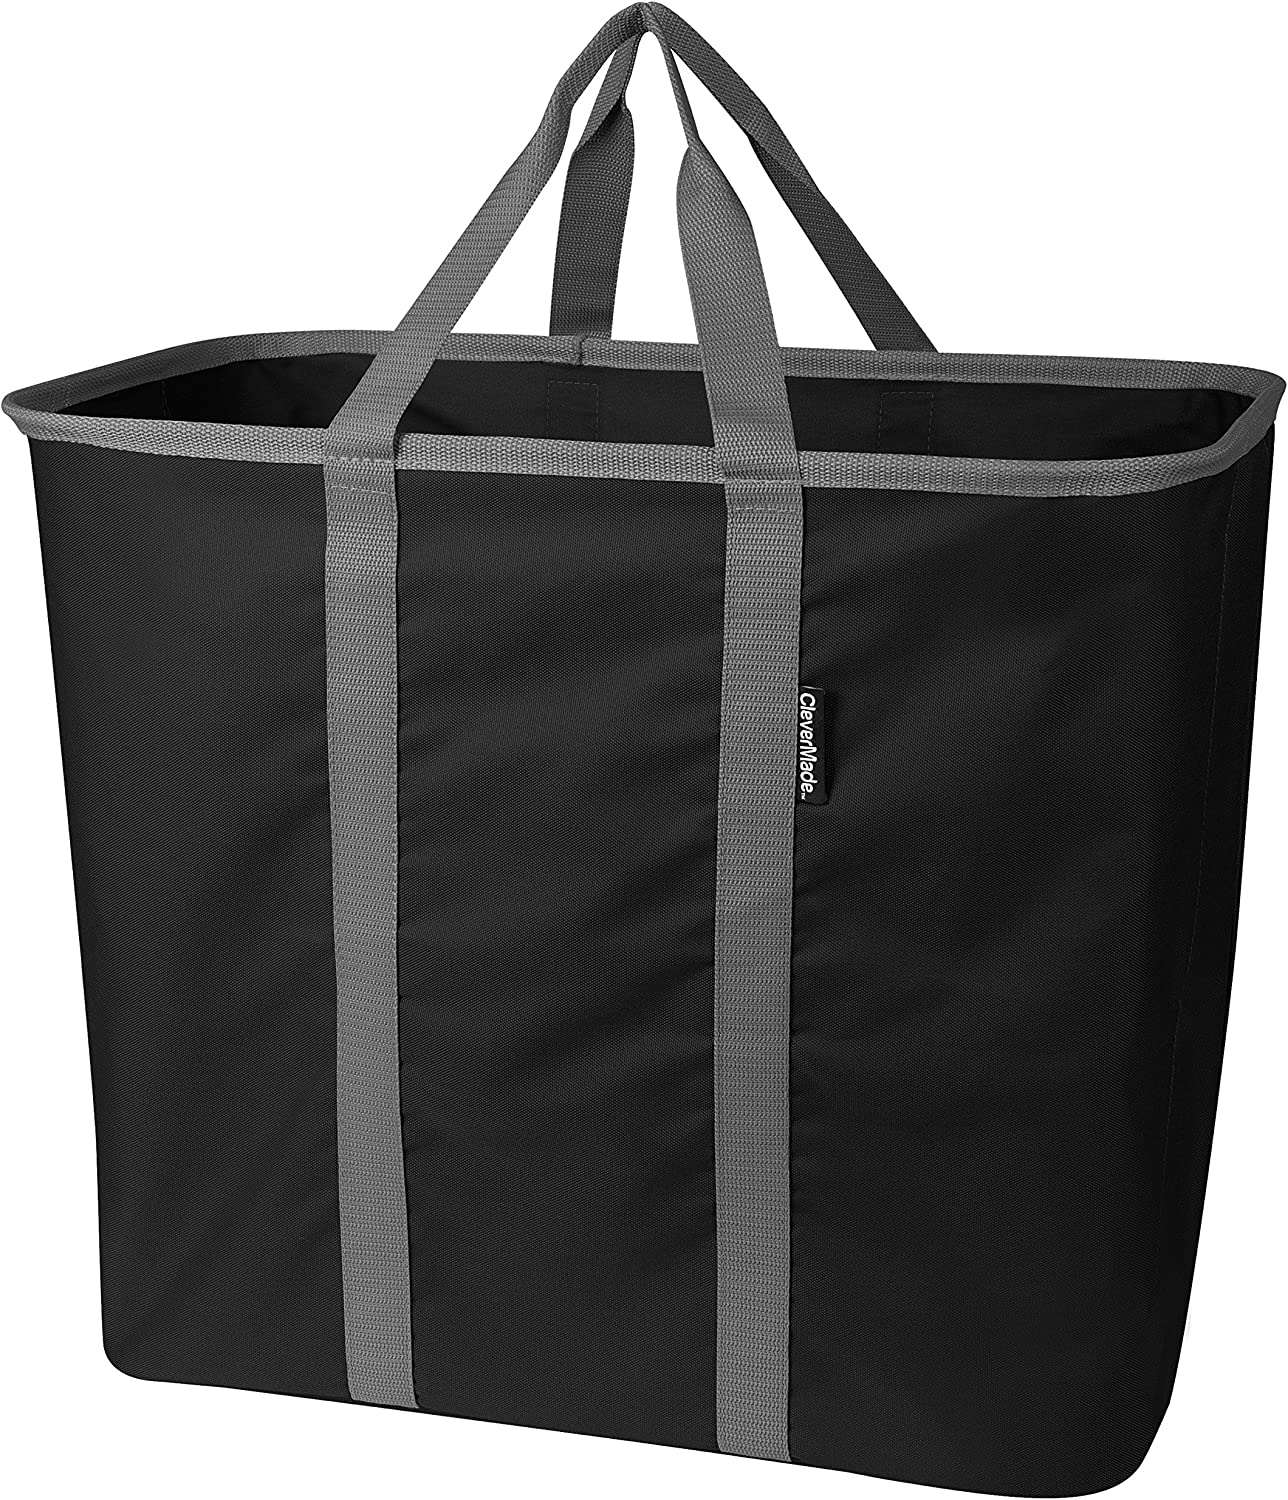 CleverMade Collapsible Laundry Tote, Large Foldable Clothes Hamper Bag, LaundryCaddy CarryAll XL Pop Up Storage Basket with Handles, Midnight/Grey